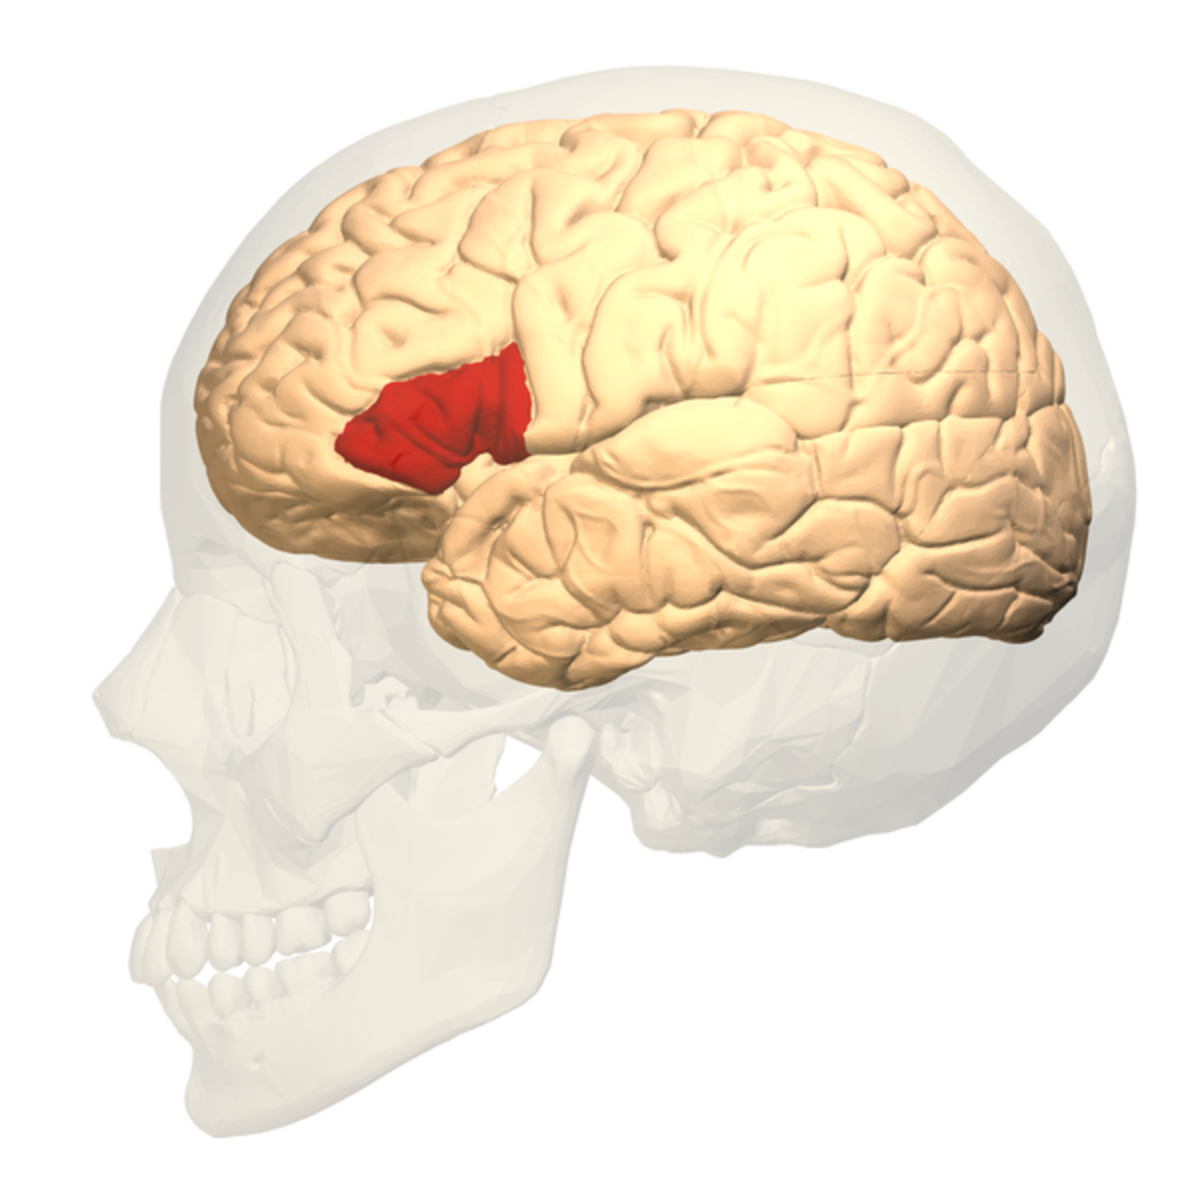 Broca's area (the red patch) is located in a frontal lobe of the cerebrum.